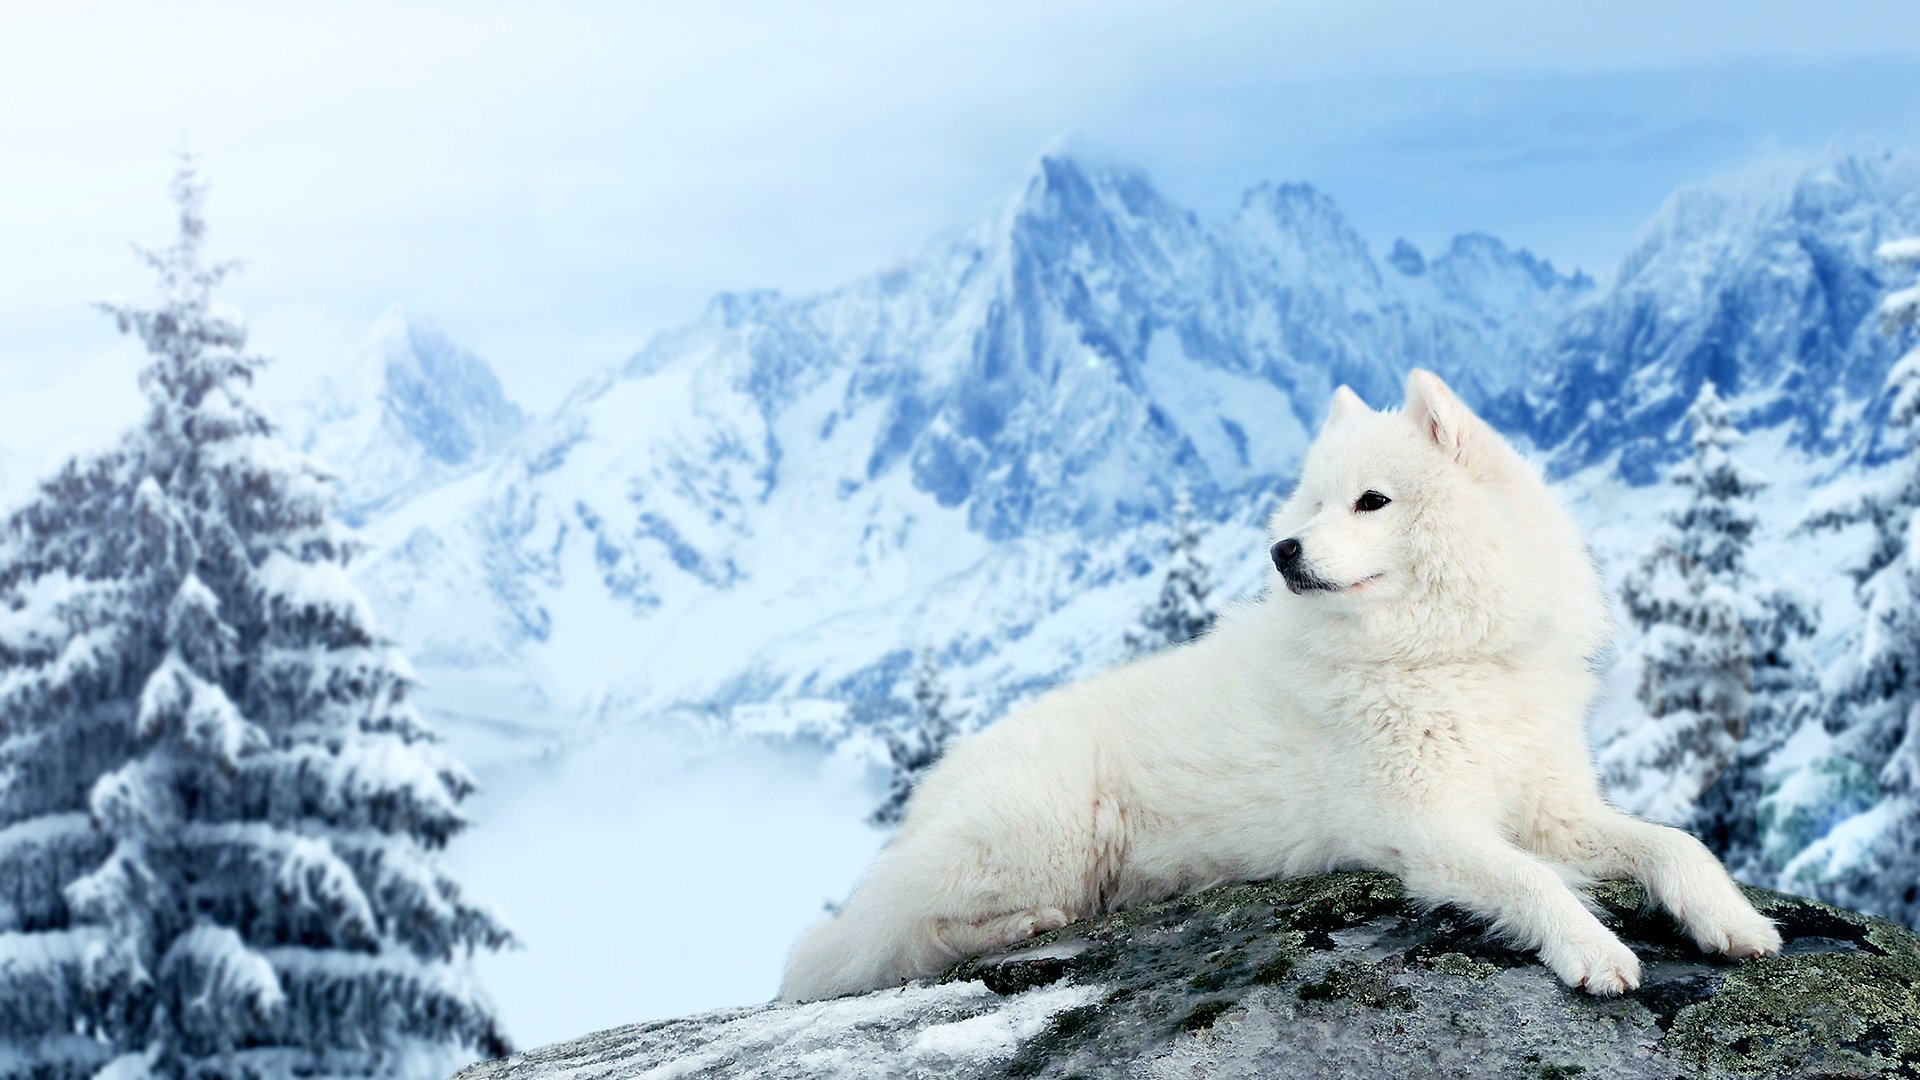 Dog-Samoyed-mountains-winter-snow-1920x1080-Need-iPhone-S-Plus-Background-for-IP-wallpaper-wpc9004322